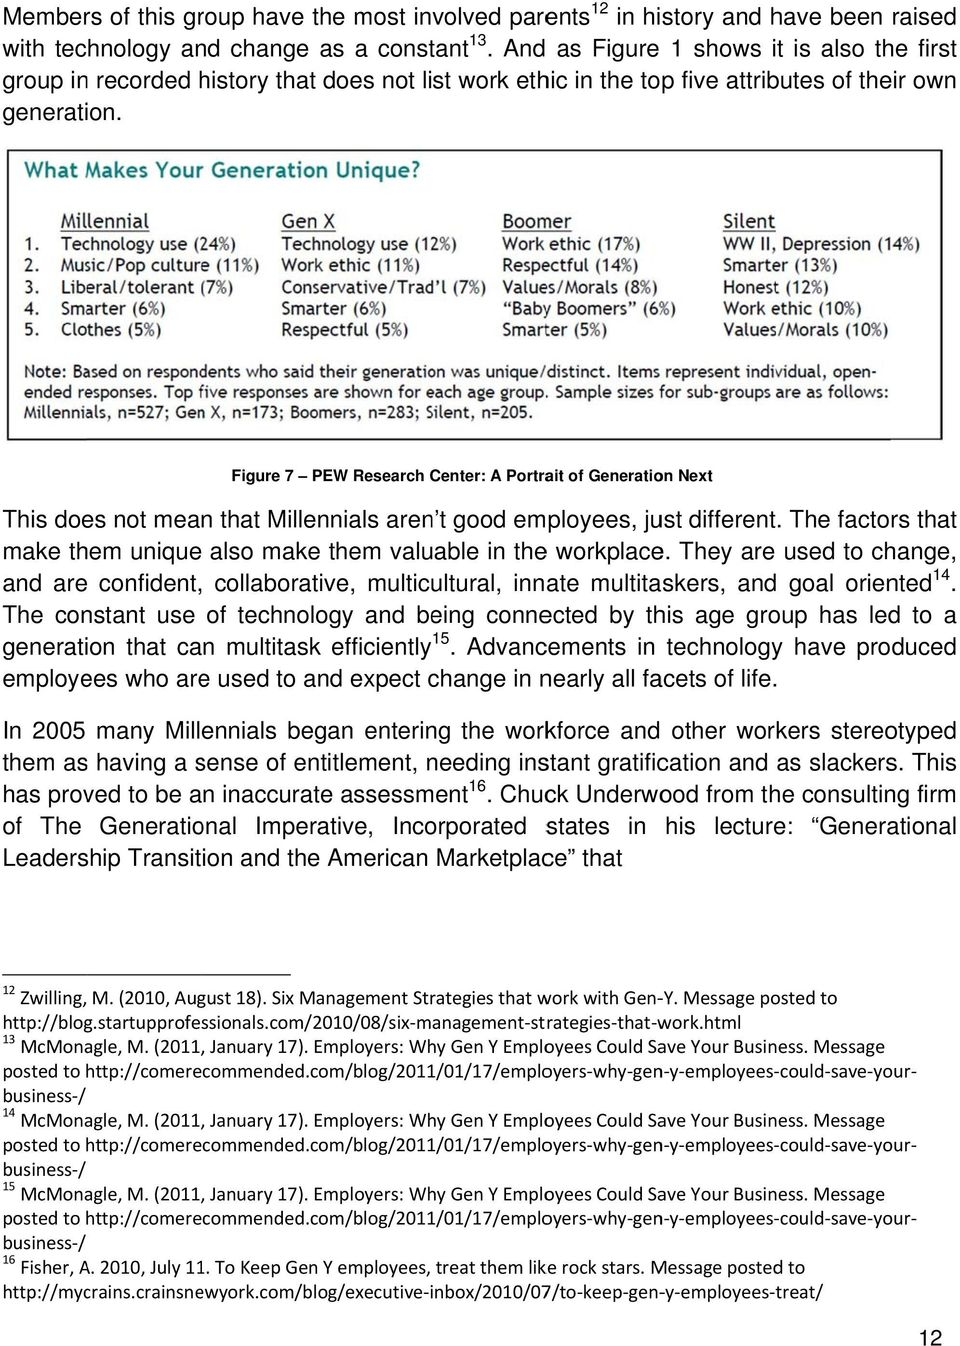 com/blog/2011/01/17/employers why gen y employees could save your Your Business. Message business / 14 McMonagle, M. (2011, January 17).